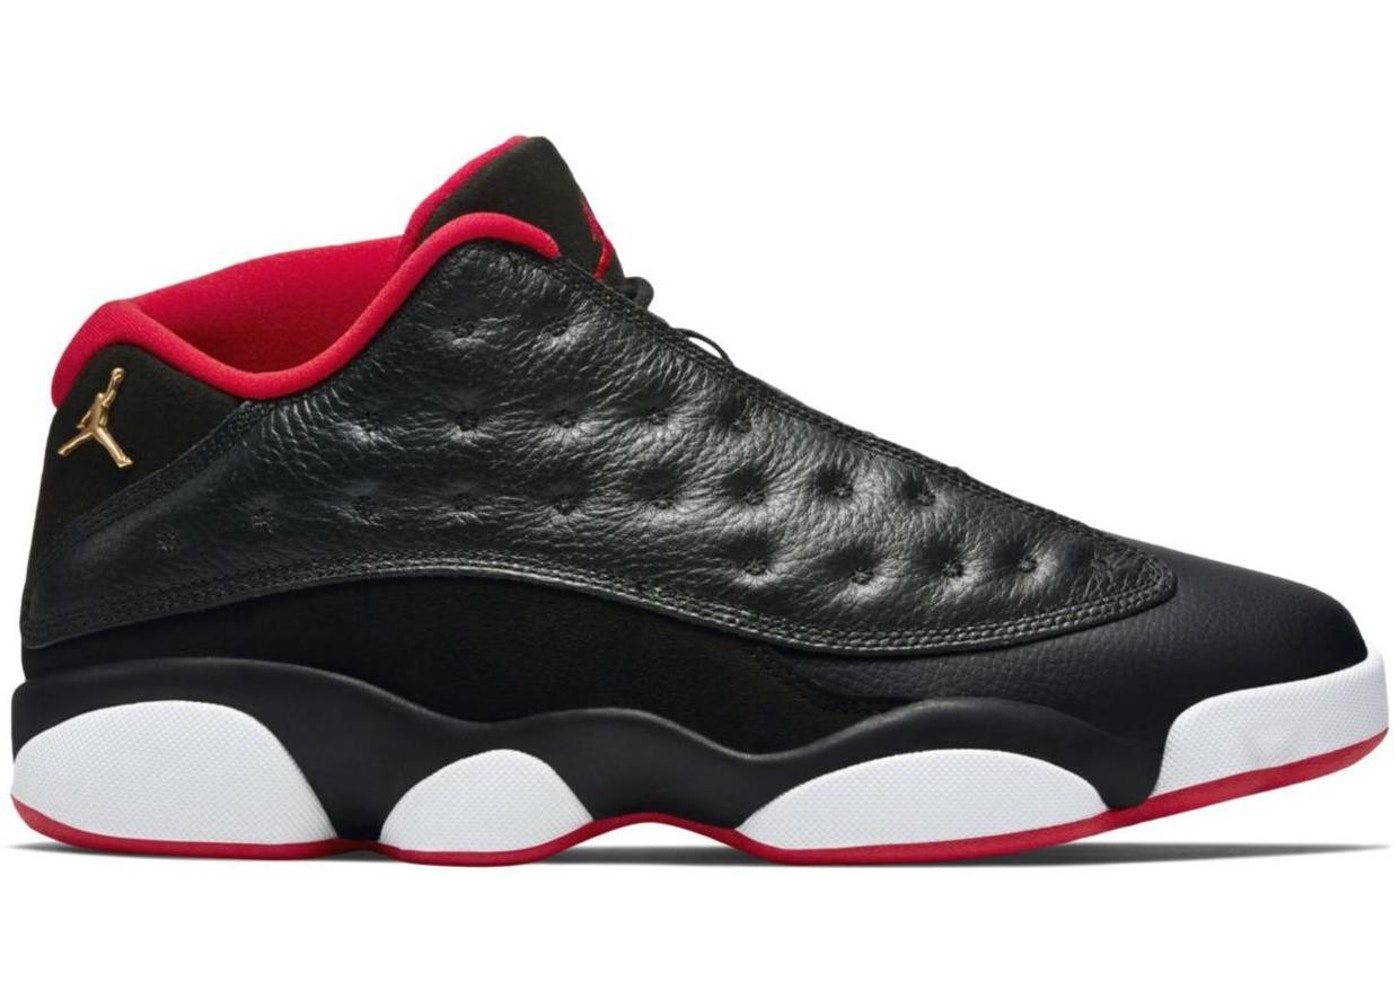 a637e5d5263 Jordan 13 Retro Low Bred - 310810-027